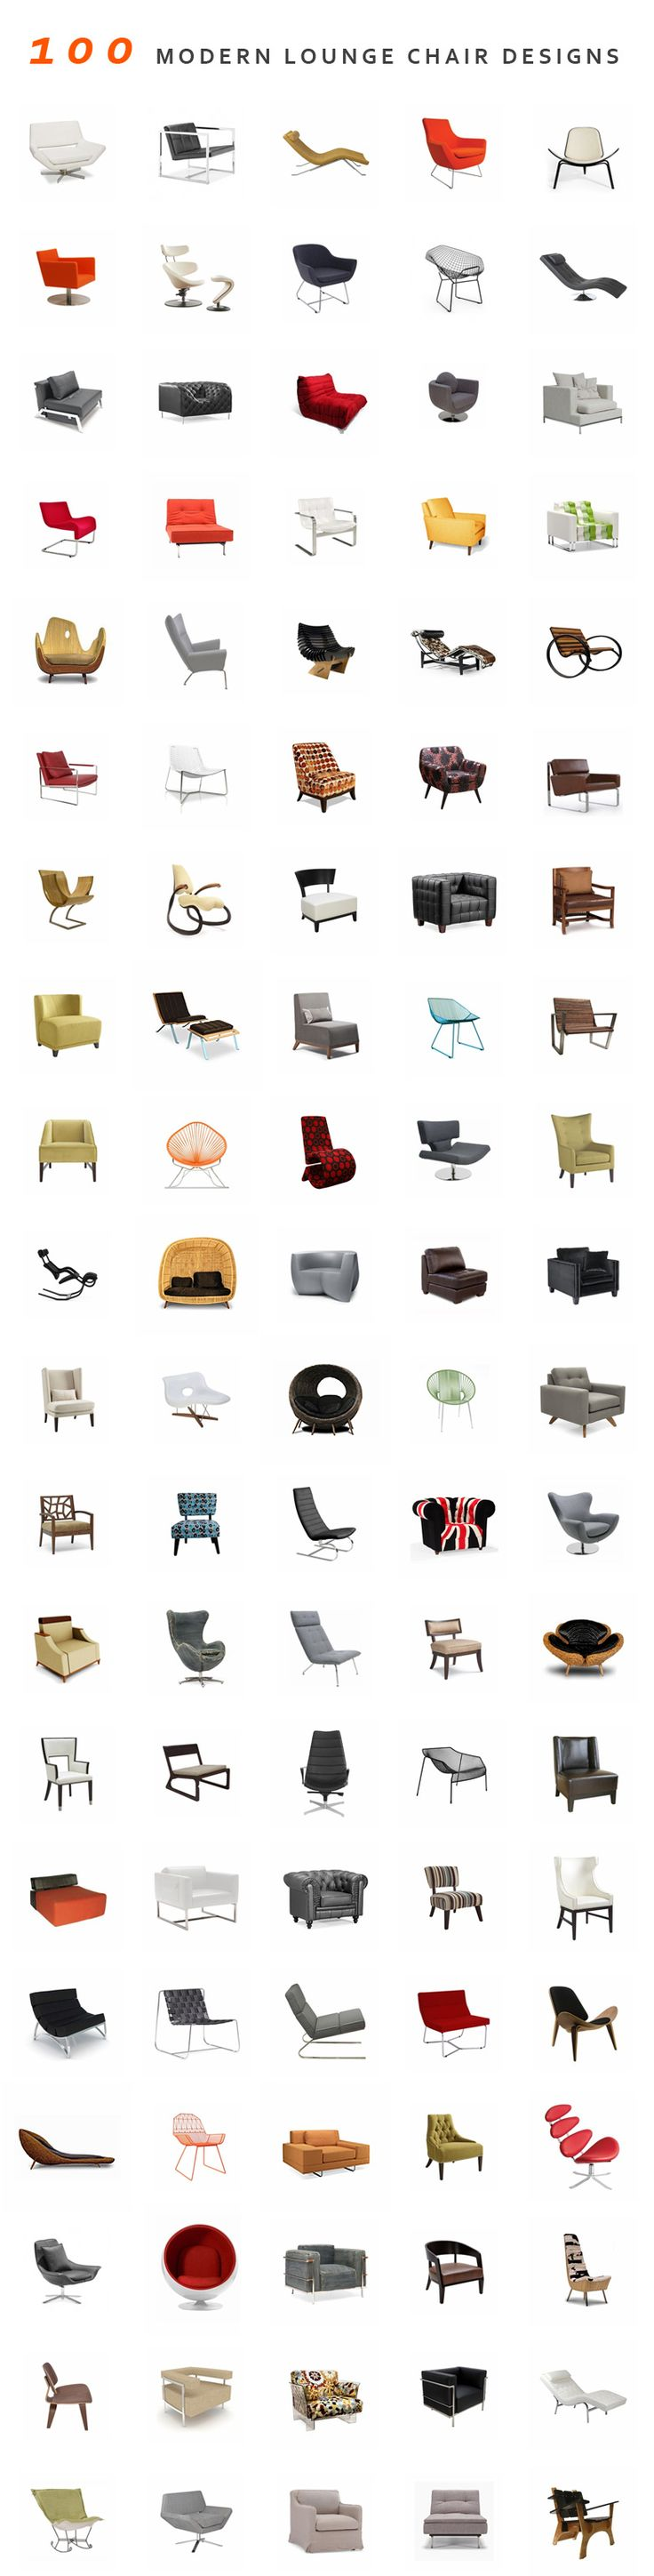 In Need Of A Modern Style Chair? These 100 Modern Lounge Chair Designs May  Give You Some Inspiration.